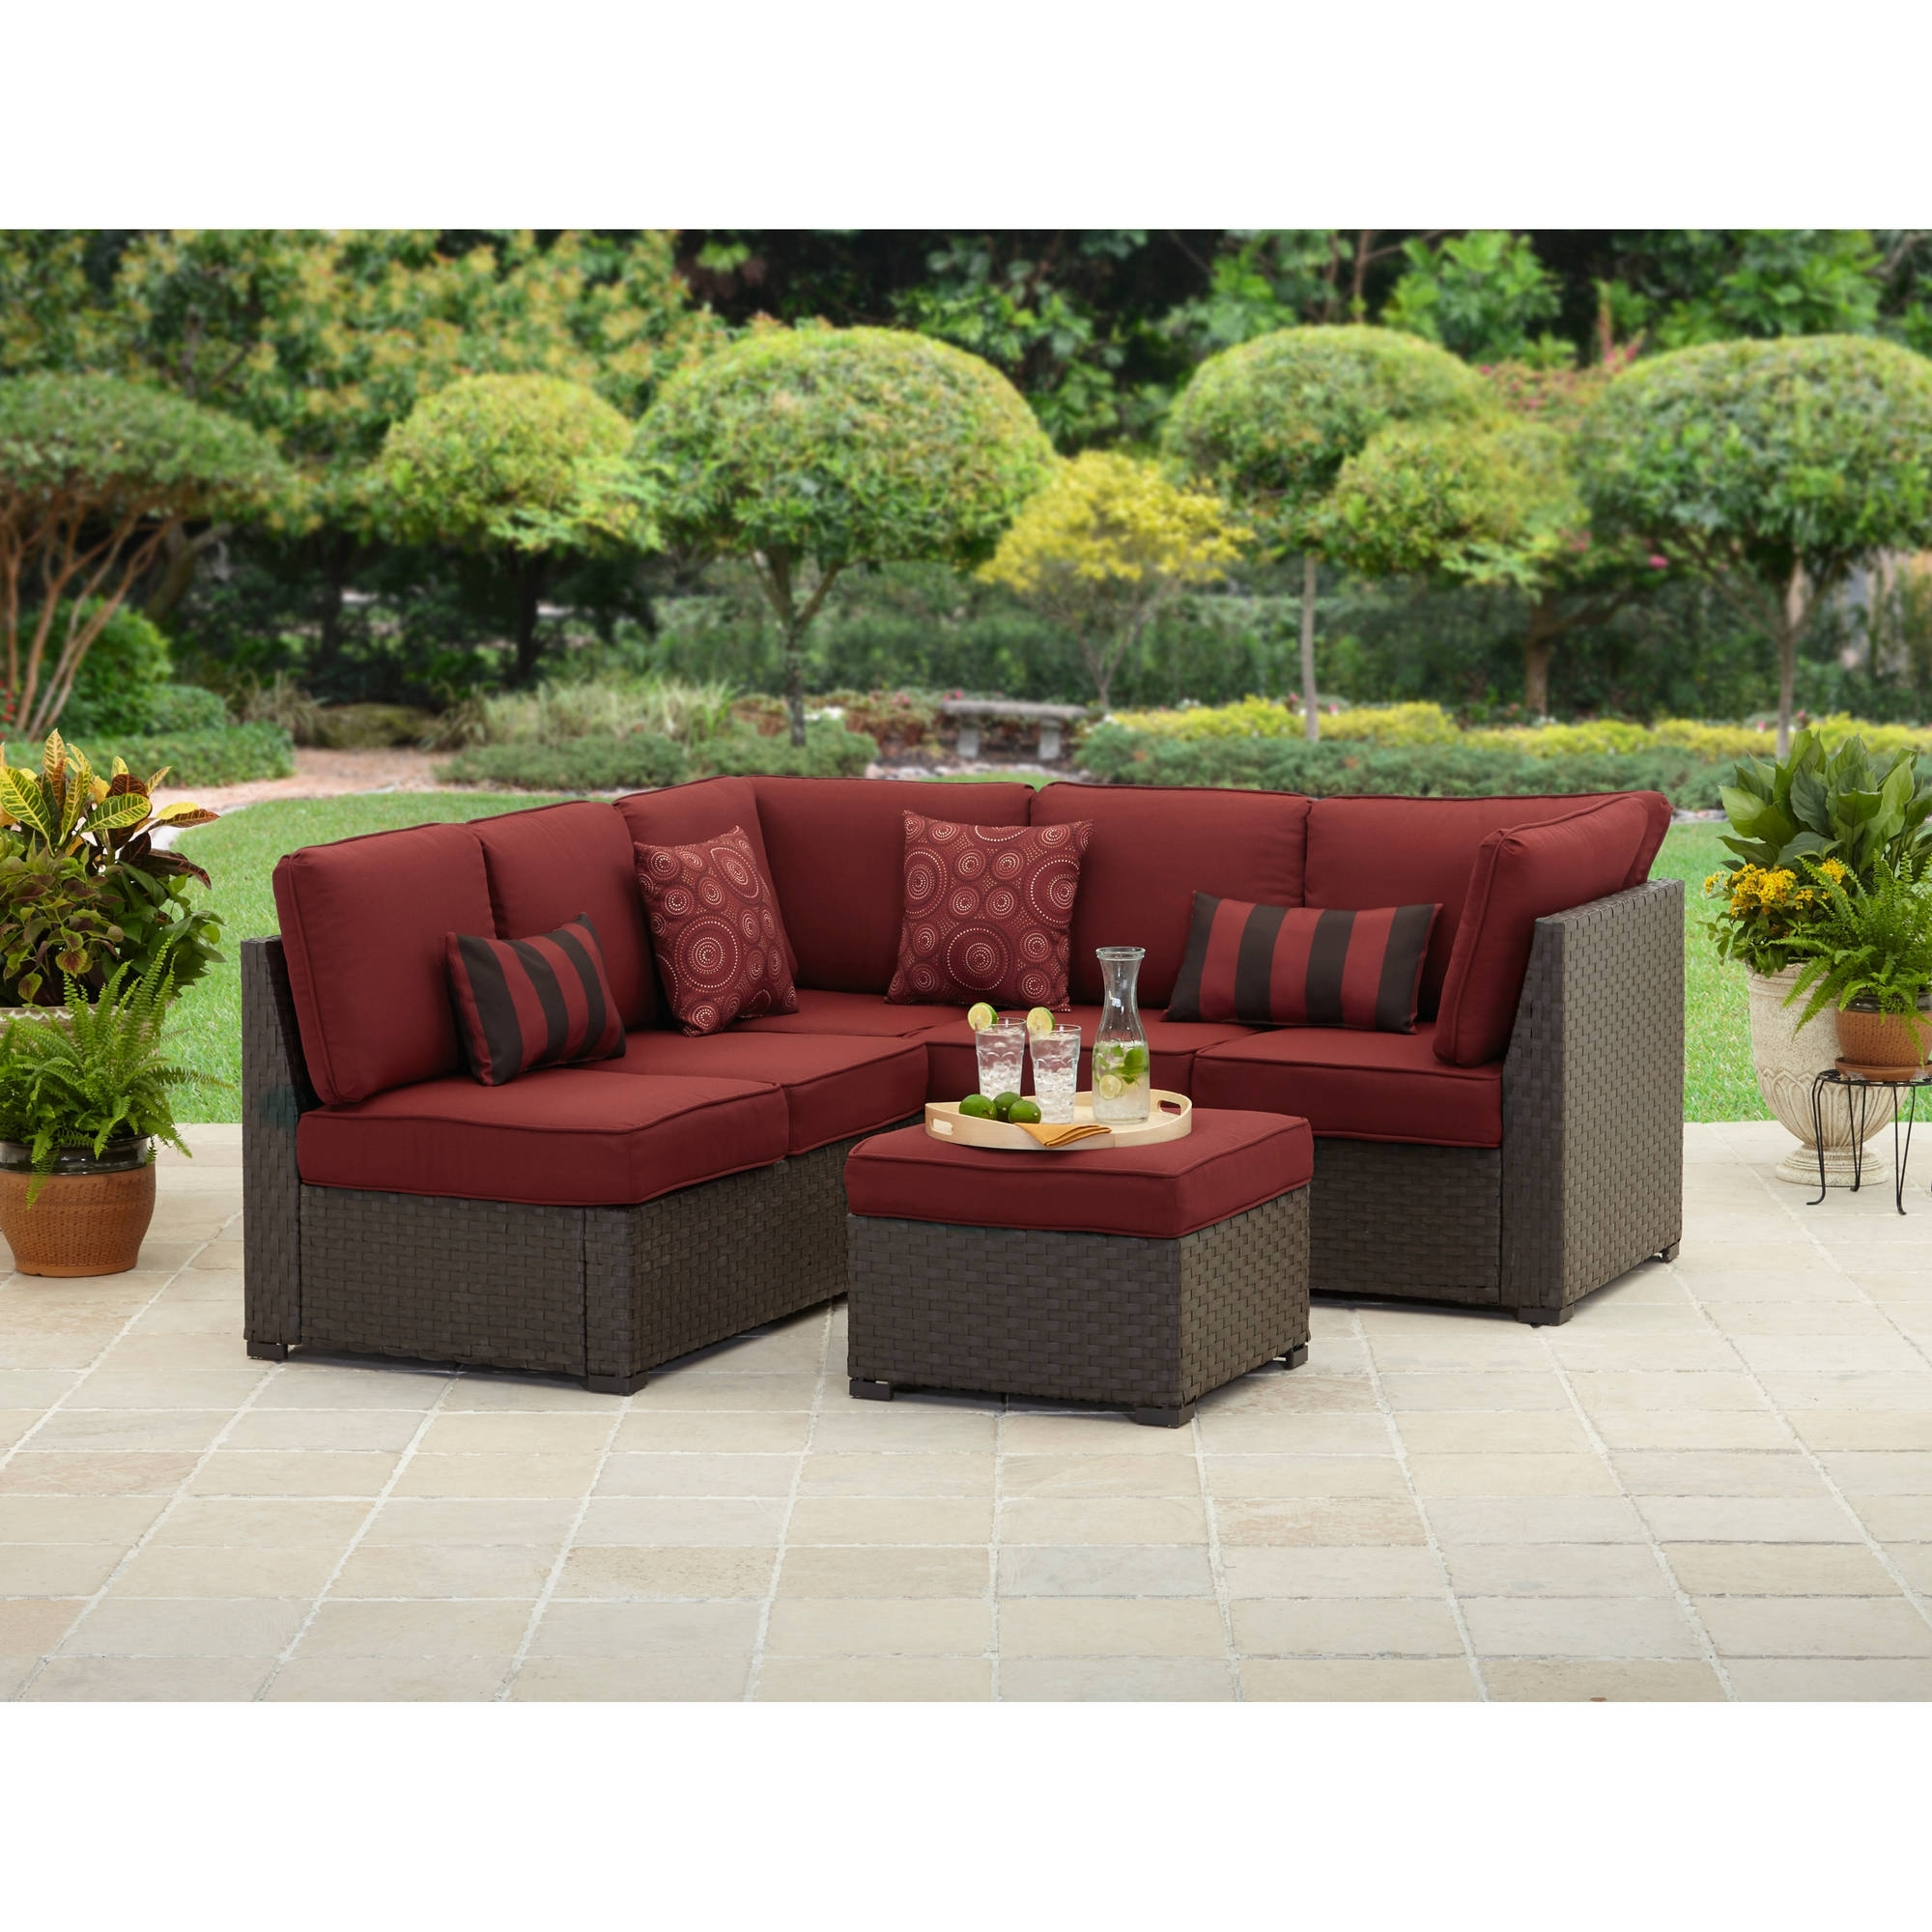 Favorite Sectional Sofas At Bc Canada With Regard To Sofa : Outdoor Furniture Rattan Sofa Outdoor Wicker Furniture (View 7 of 20)